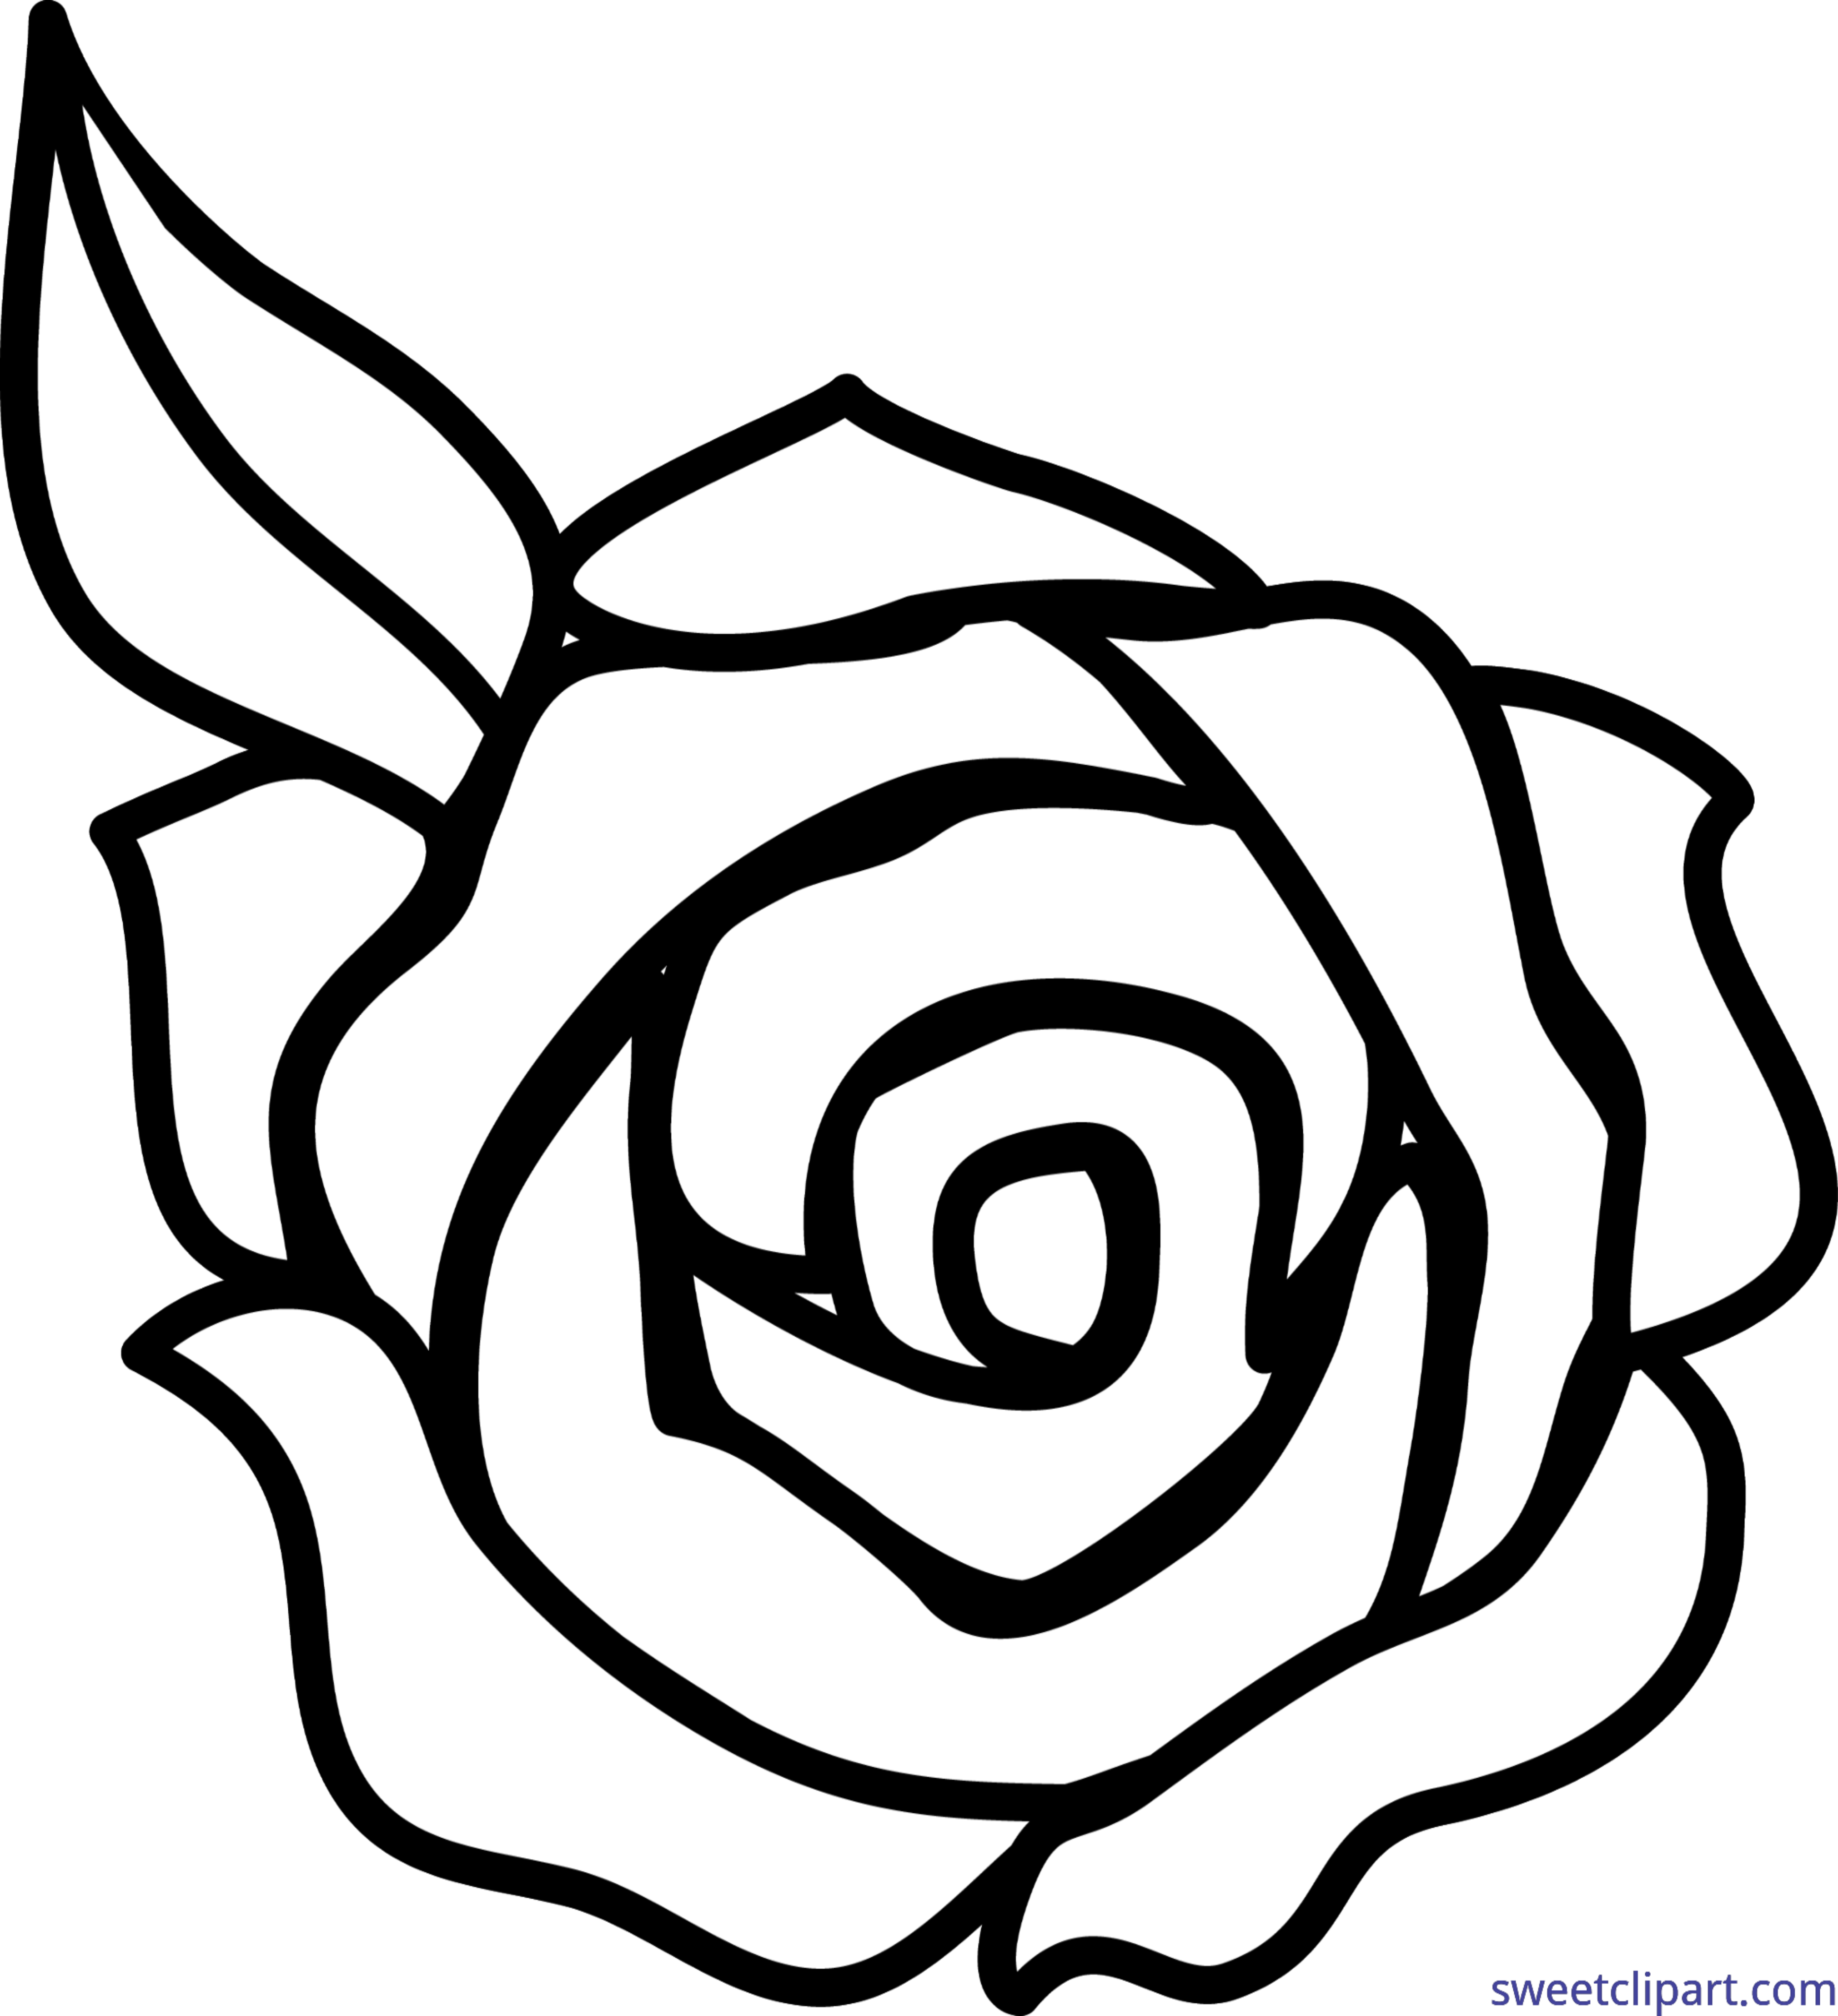 Rose black and white lineart clip art